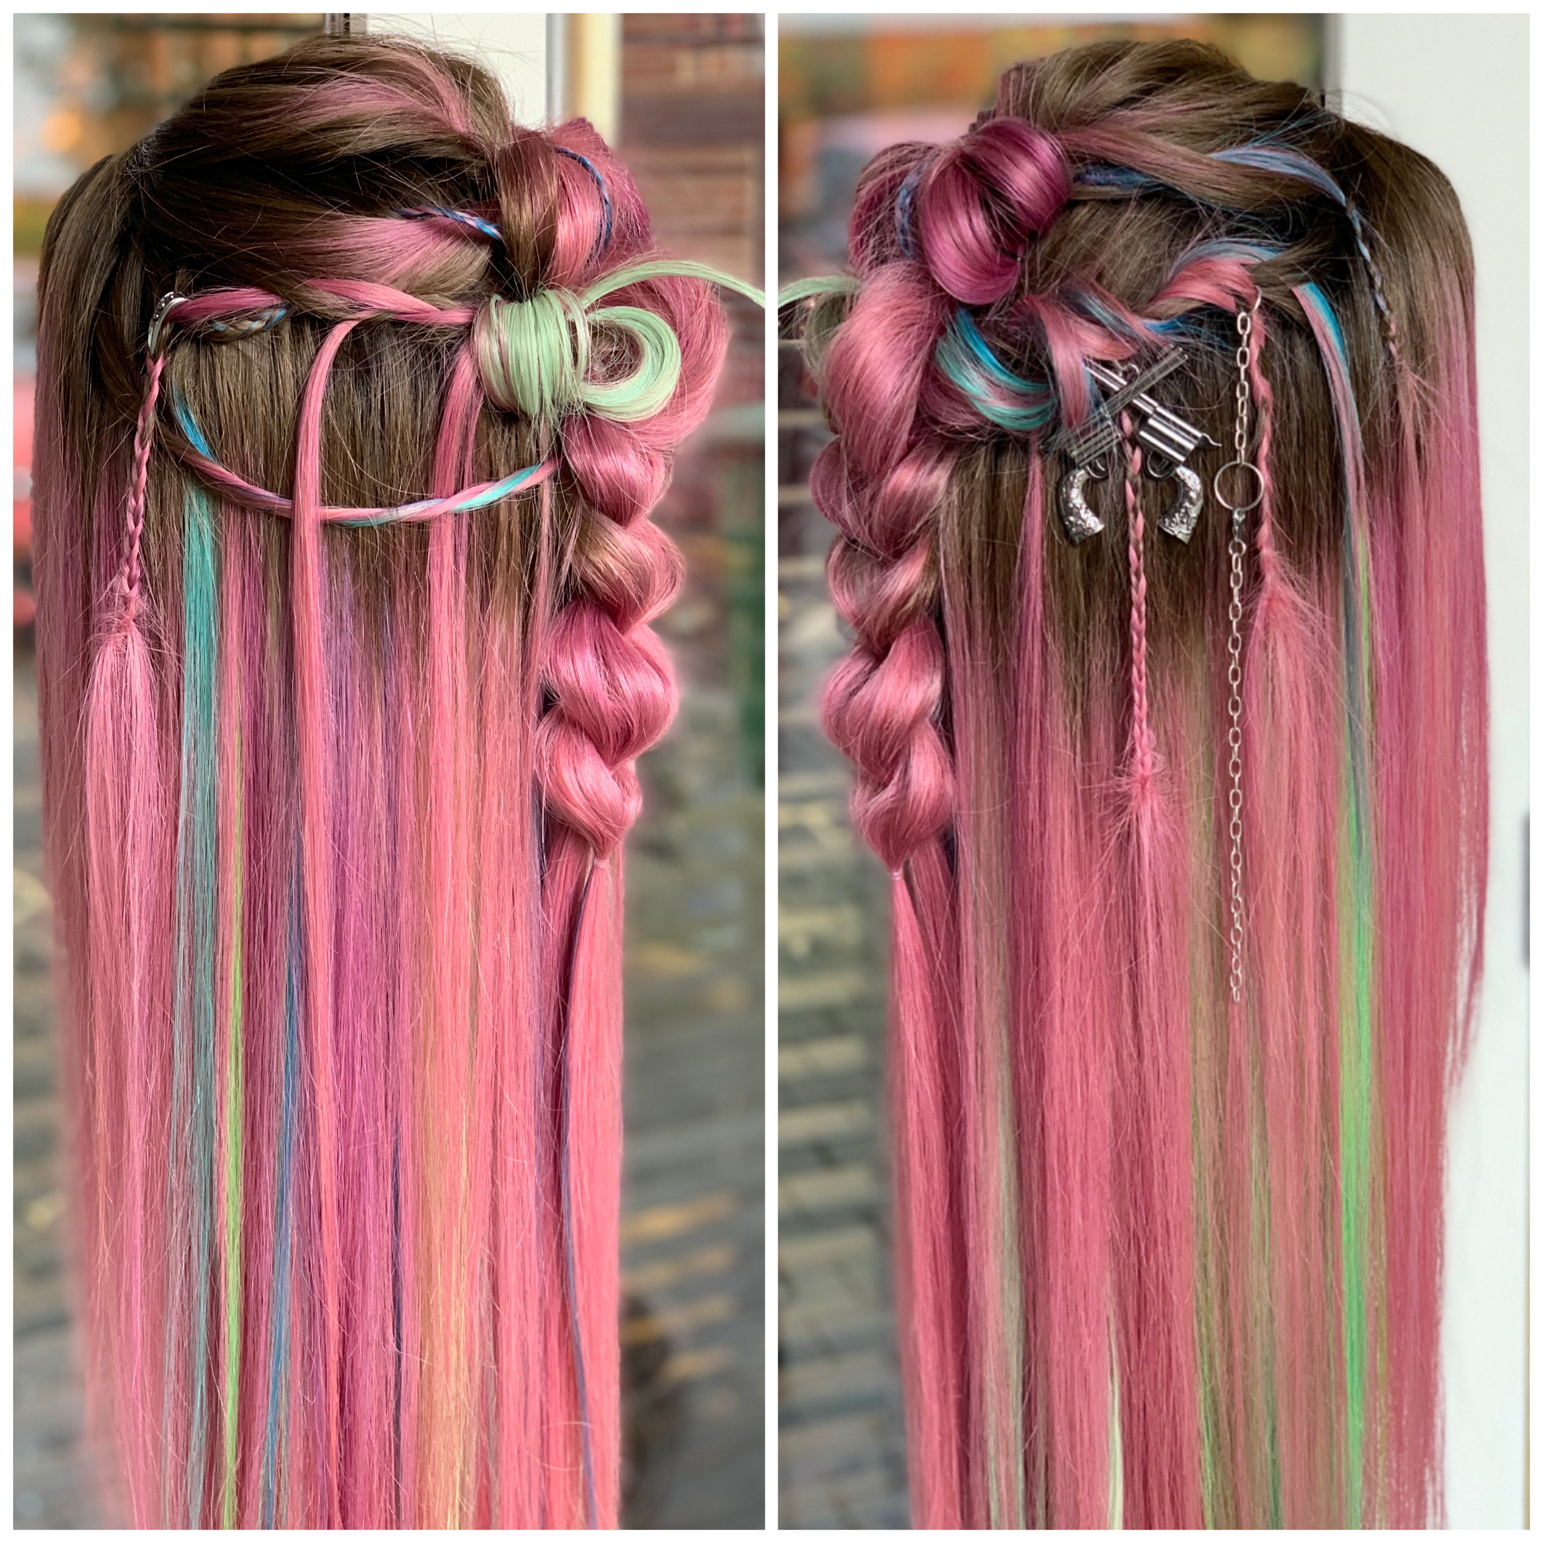 hairexpressionsstyle.jpg